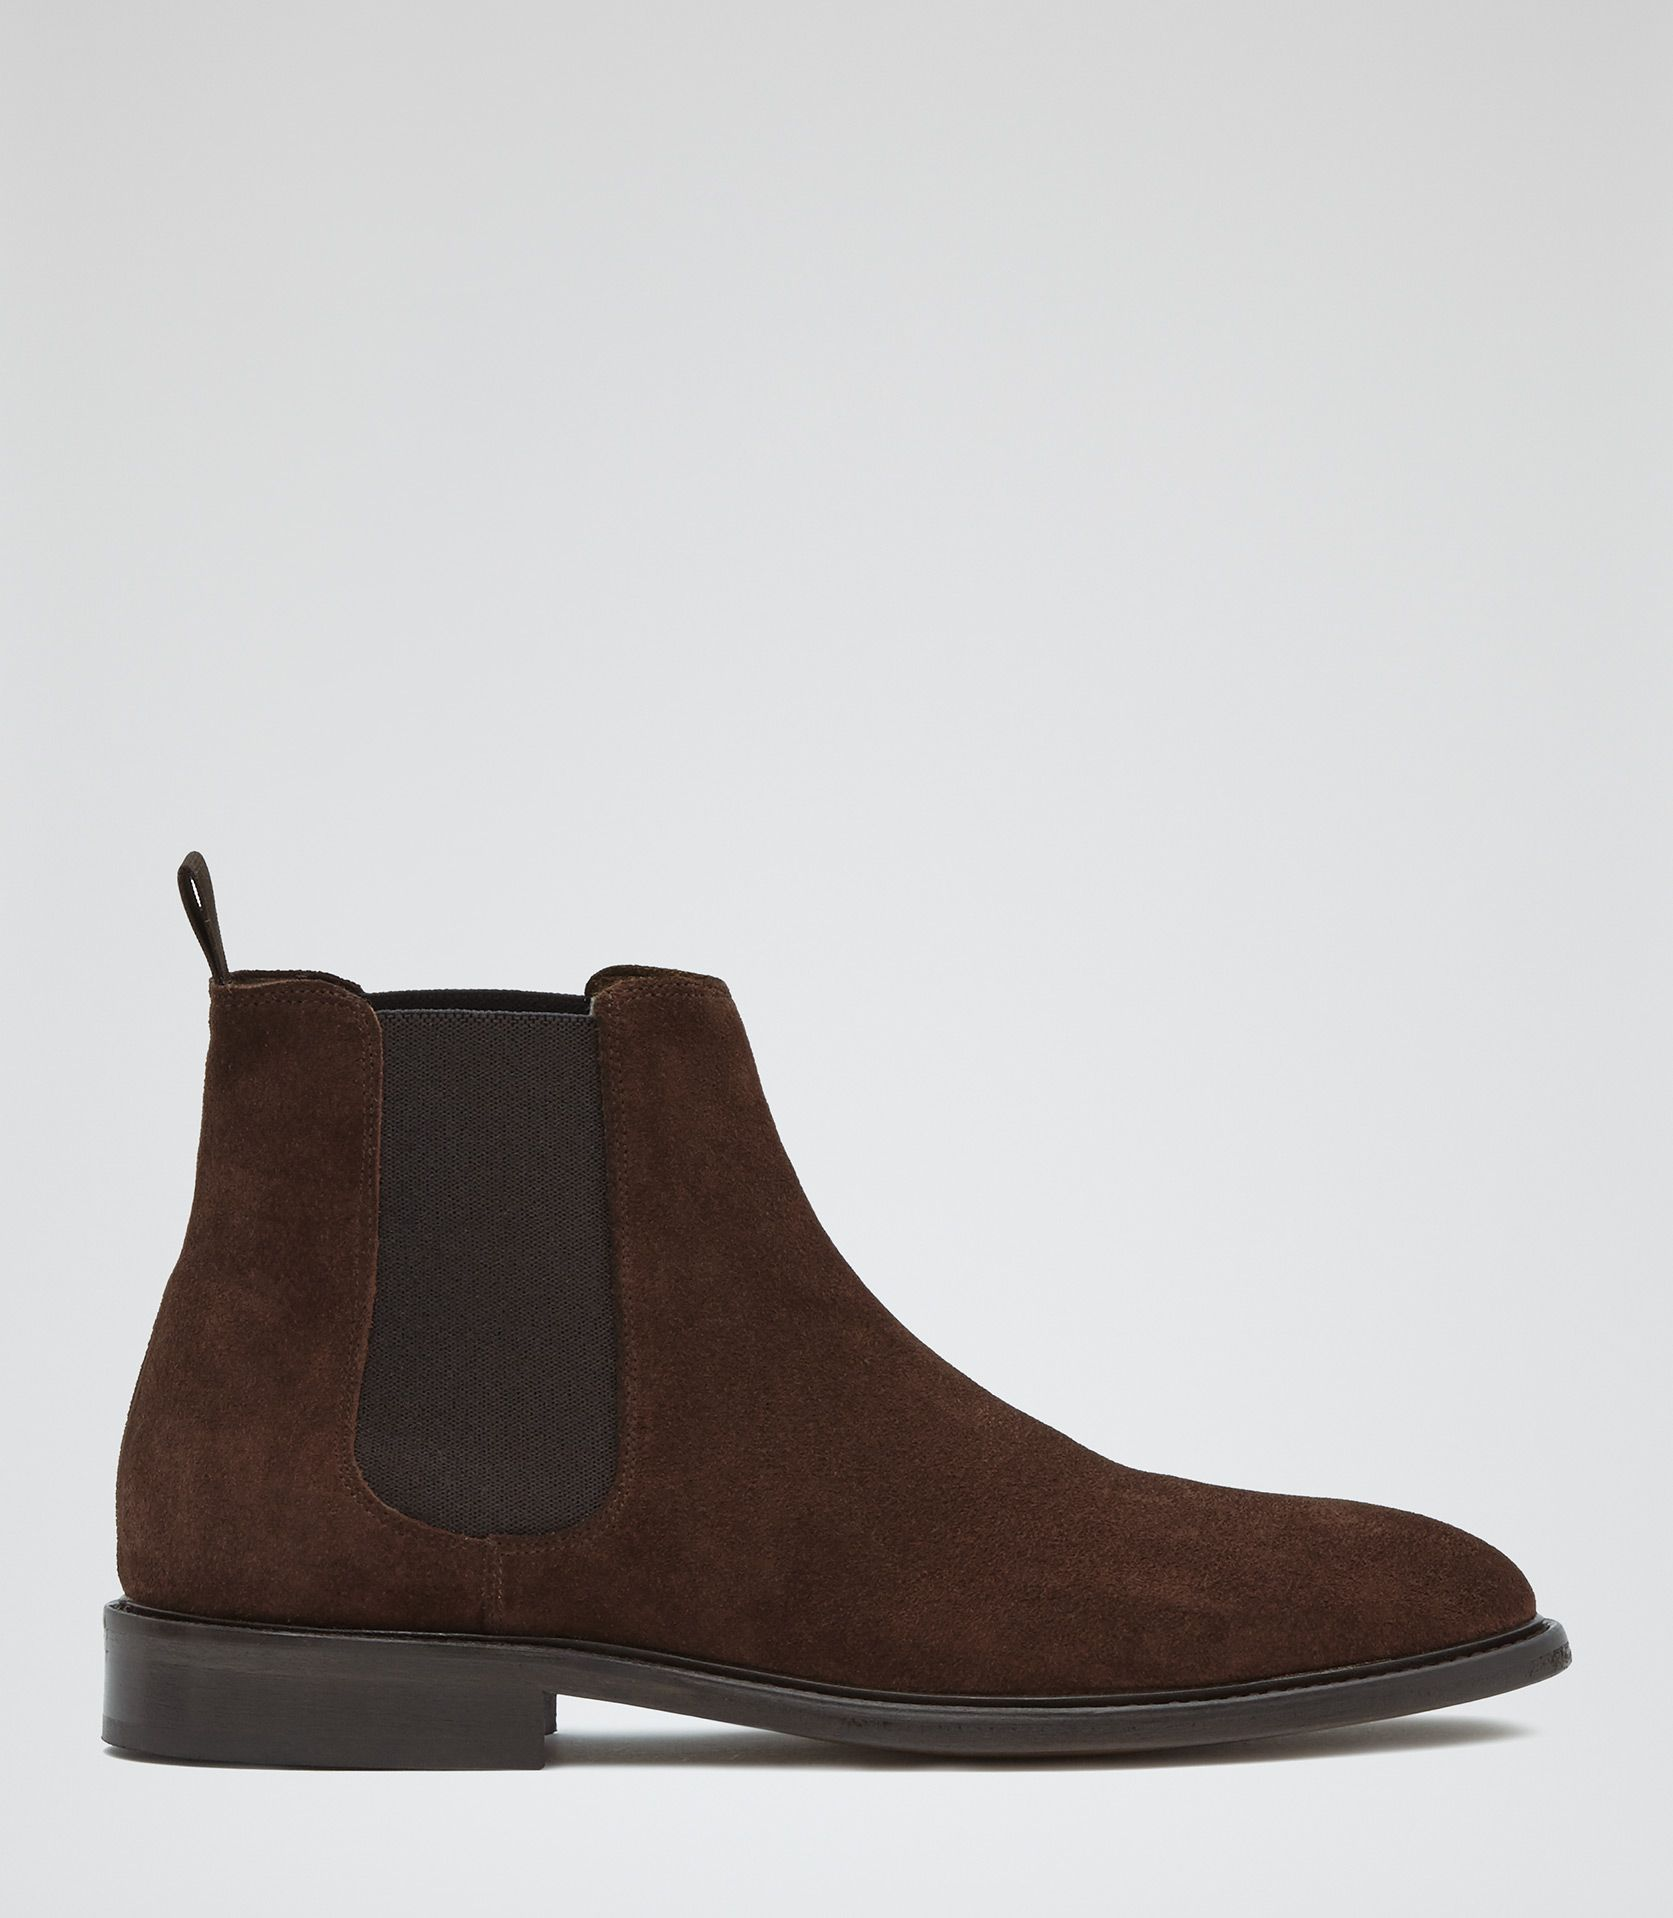 Discount Grenson Brown Marcus Suede Desert Boots for Men On Sale